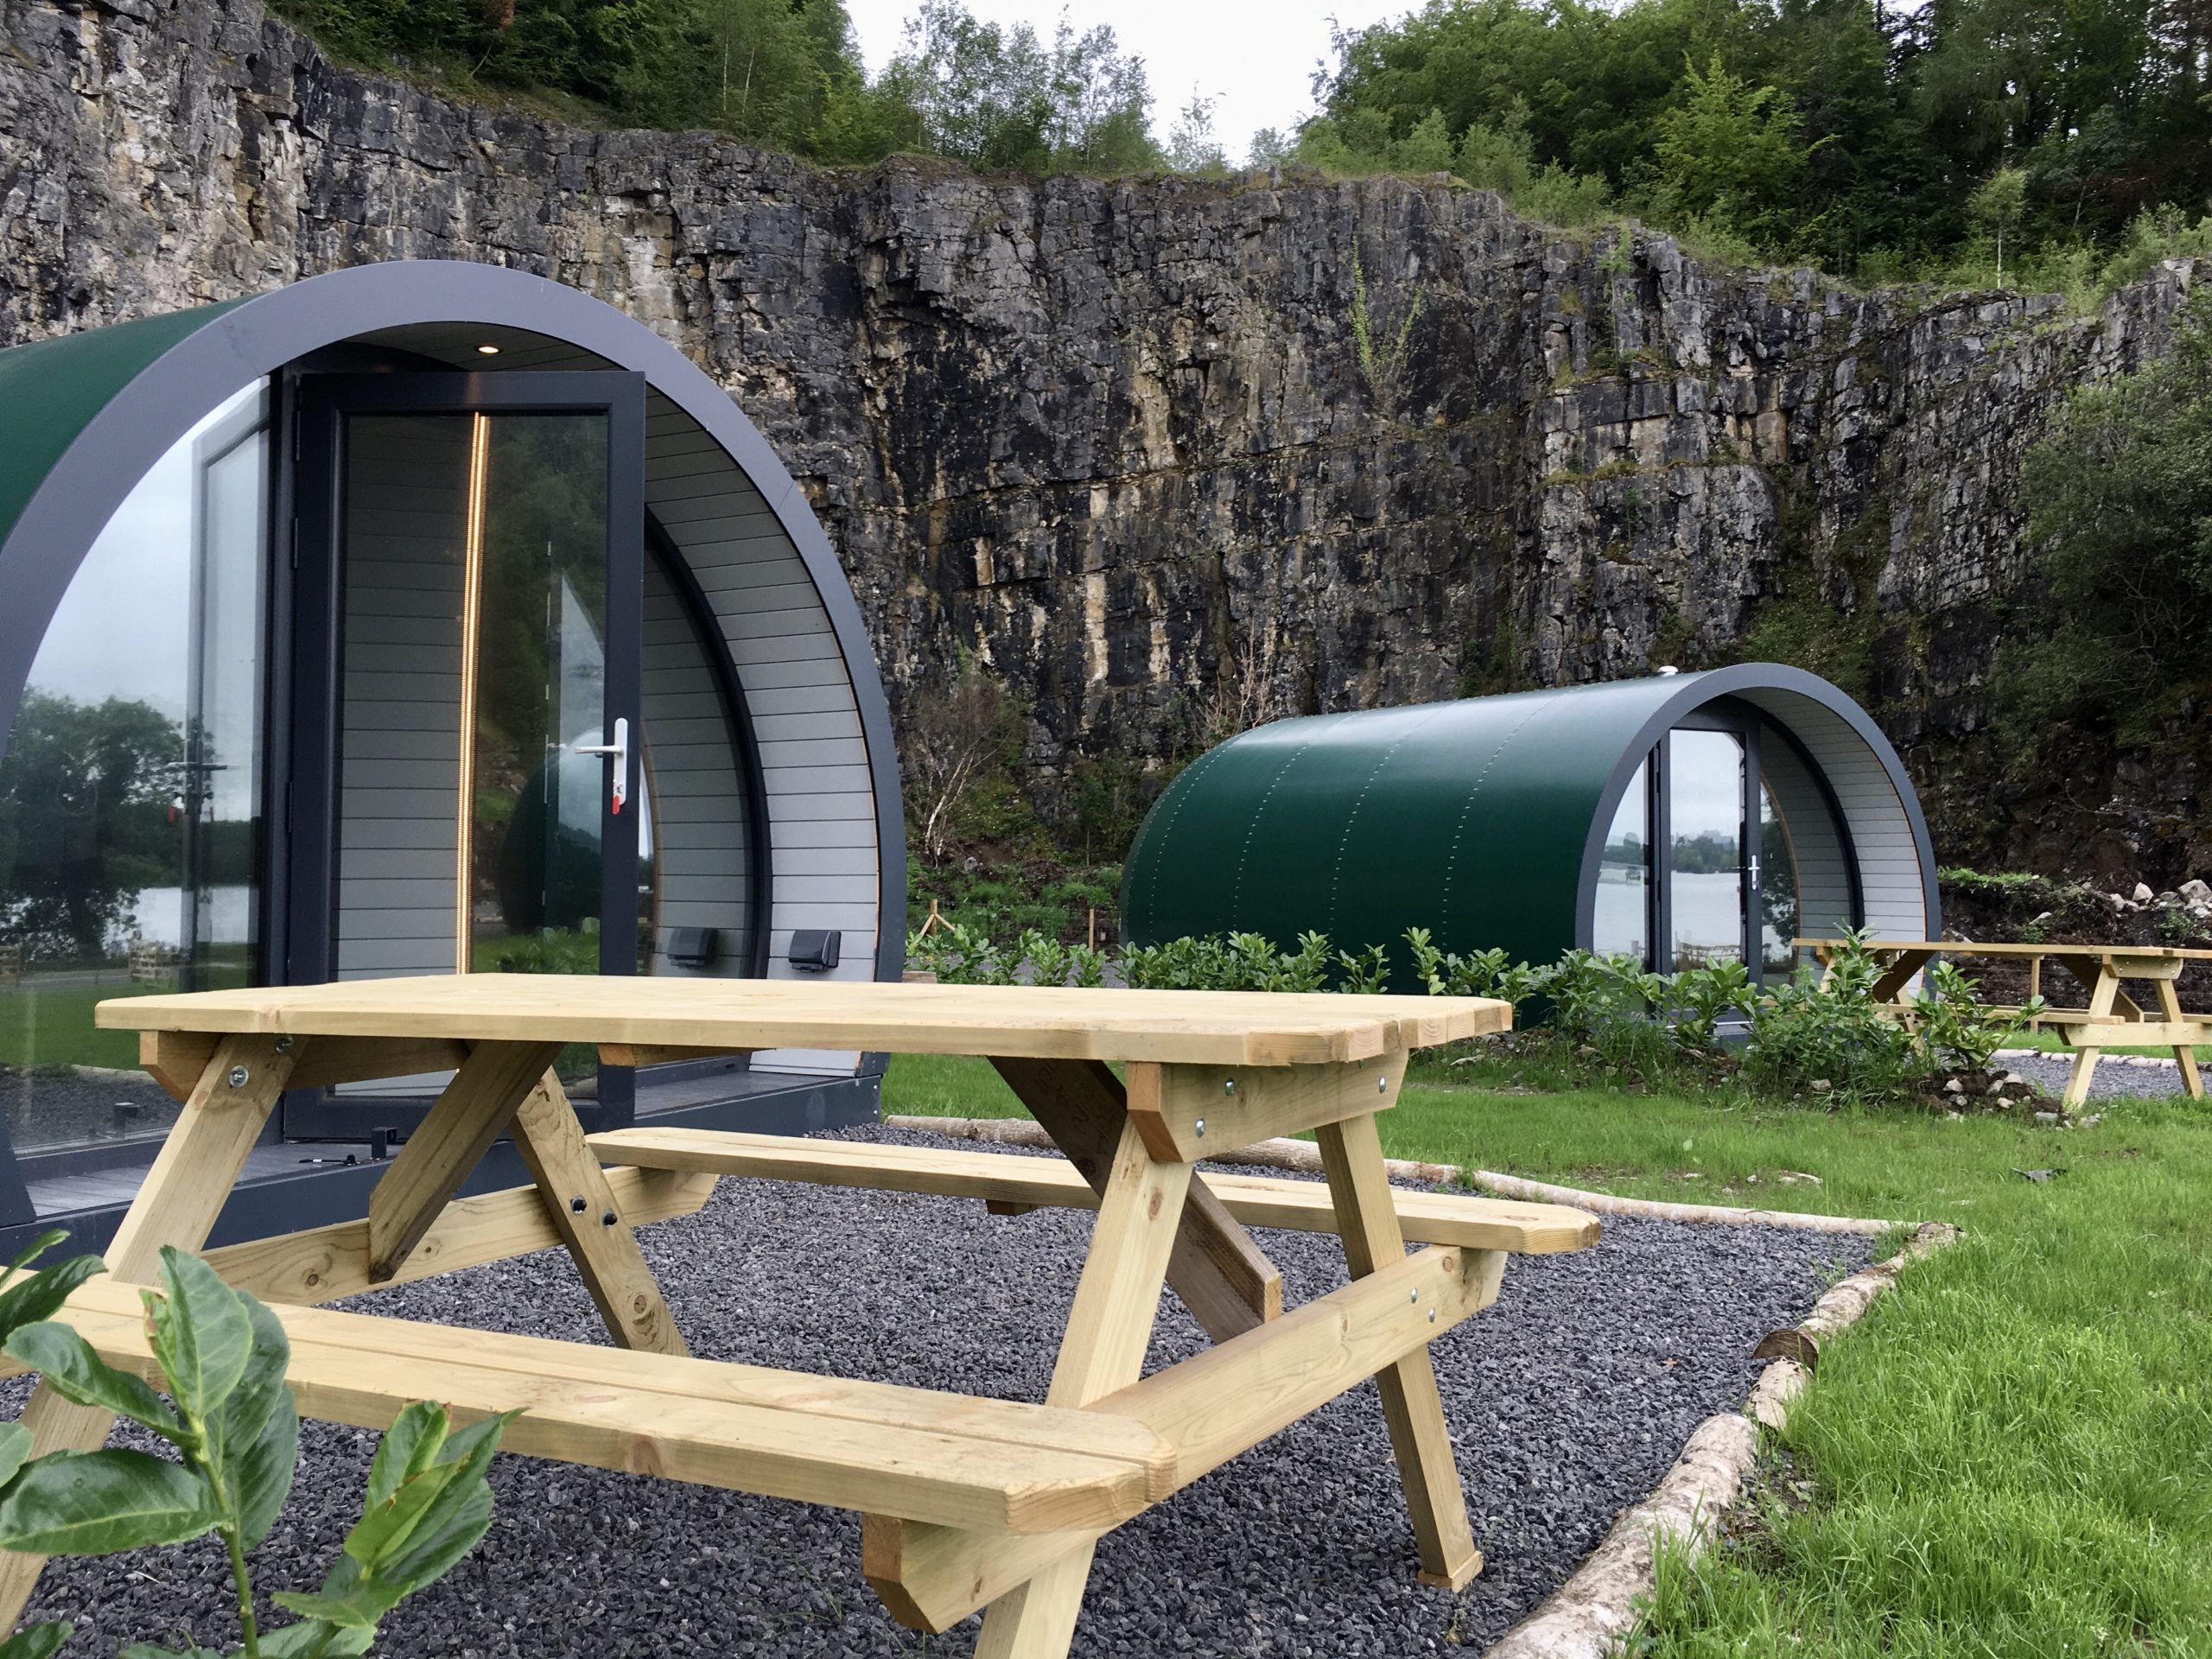 Enniskillen glamping pods outdoor area